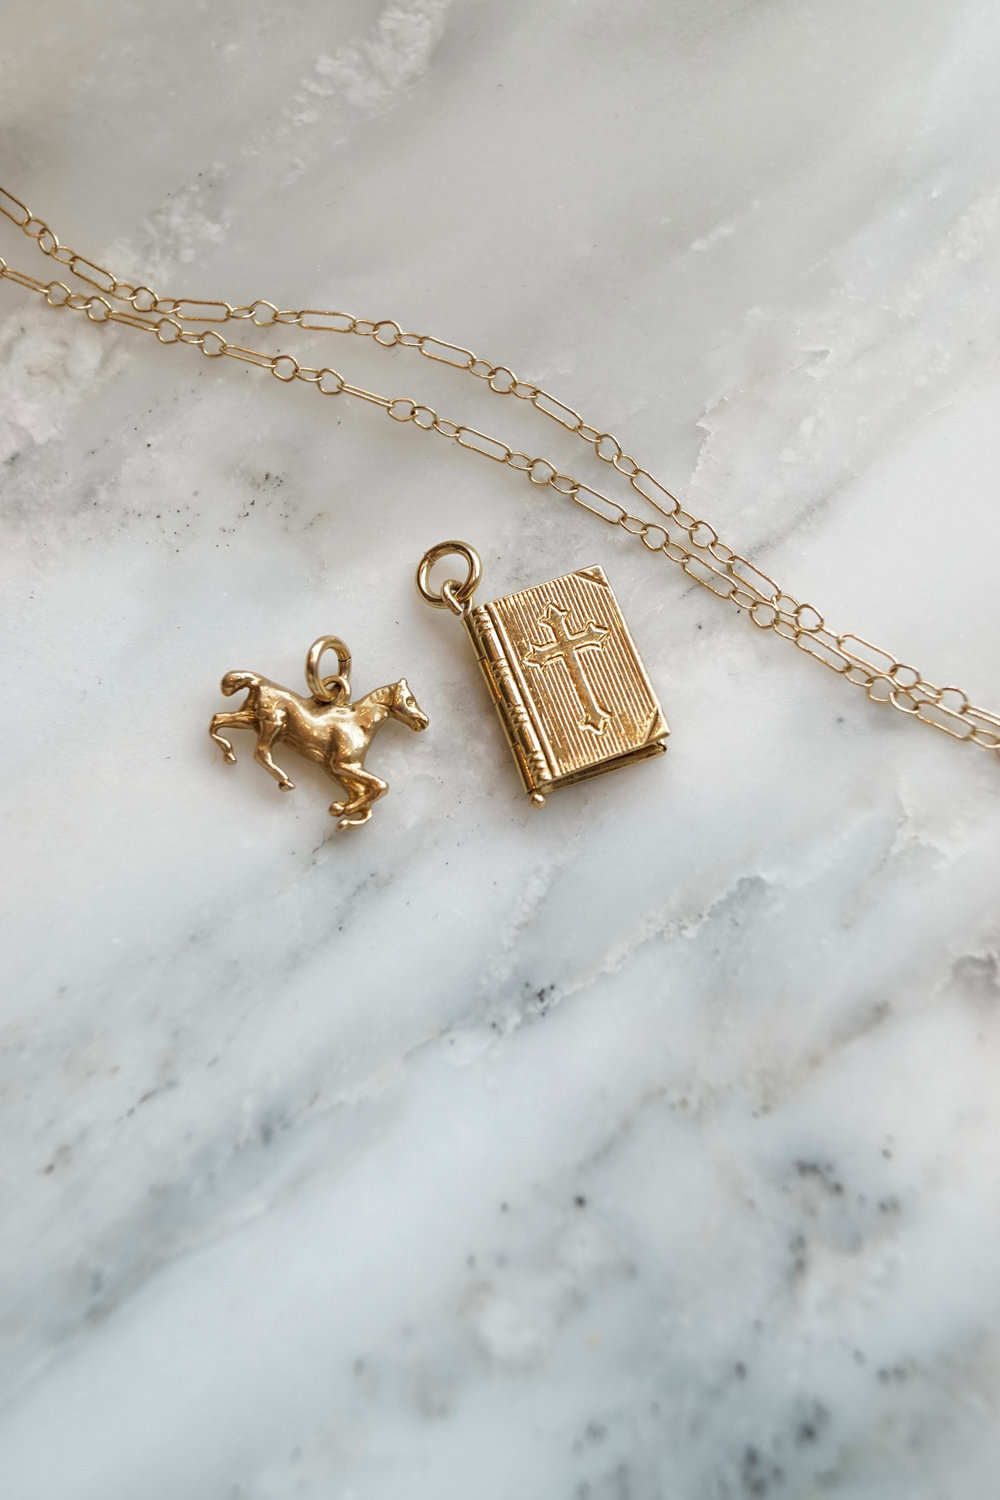 These two 14K gold pendants are available online.  Horse pendant, $195 .  14K Lord's Prayer Locket, $298 .